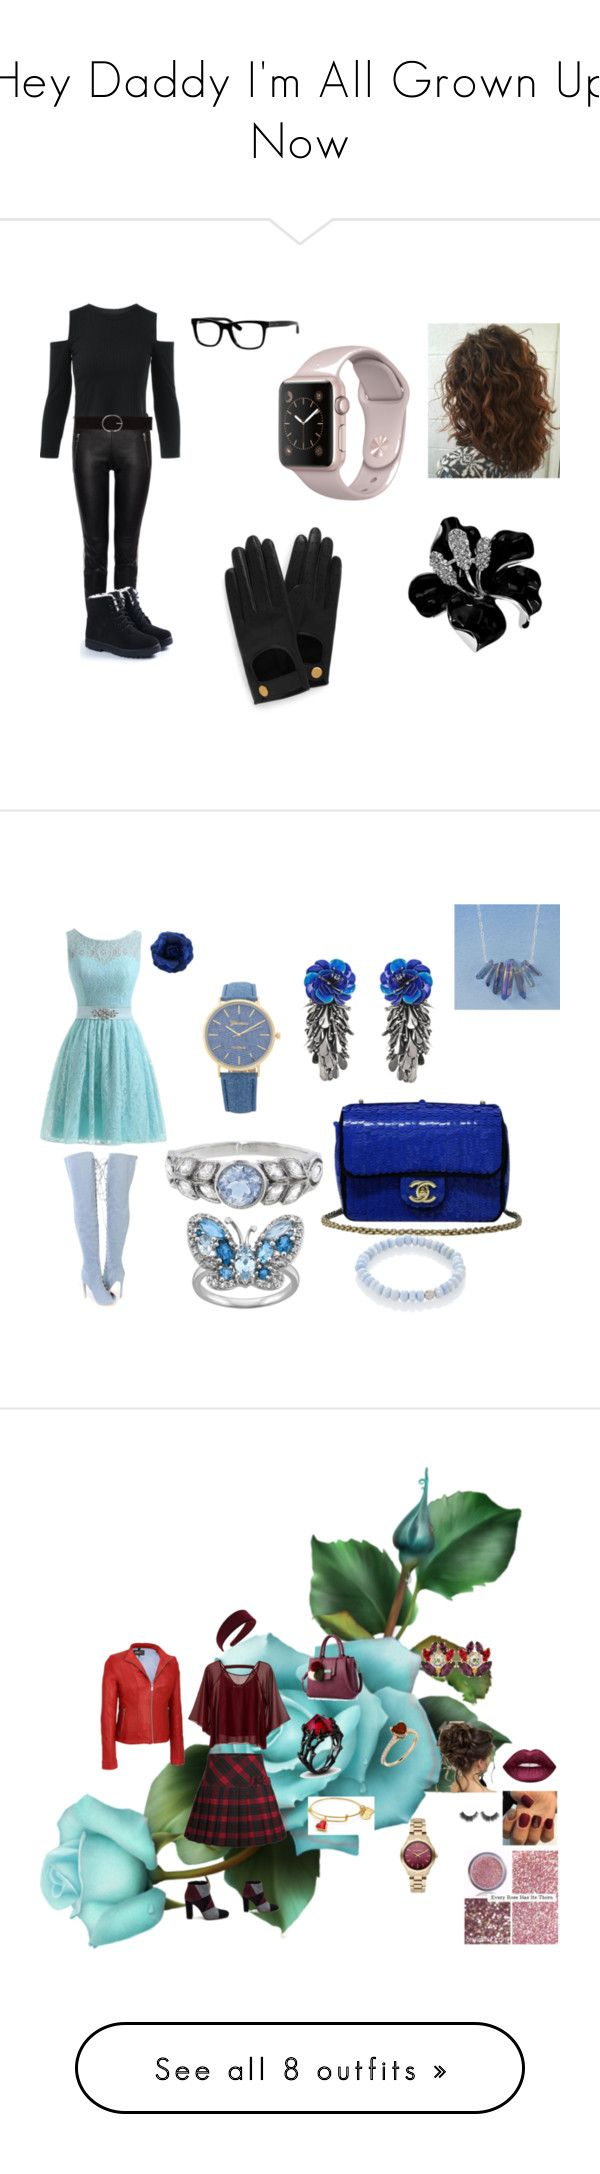 """""""Hey Daddy I'm All Grown Up Now"""" by janiesthoughtsrevive on Polyvore featuring Alexander McQueen, Mulberry, Vero Moda, Bobbi Brown Cosmetics, Forest of Chintz, Chanel, Cathy Waterman, Sydney Evan, Roberto Festa and Traffic People"""